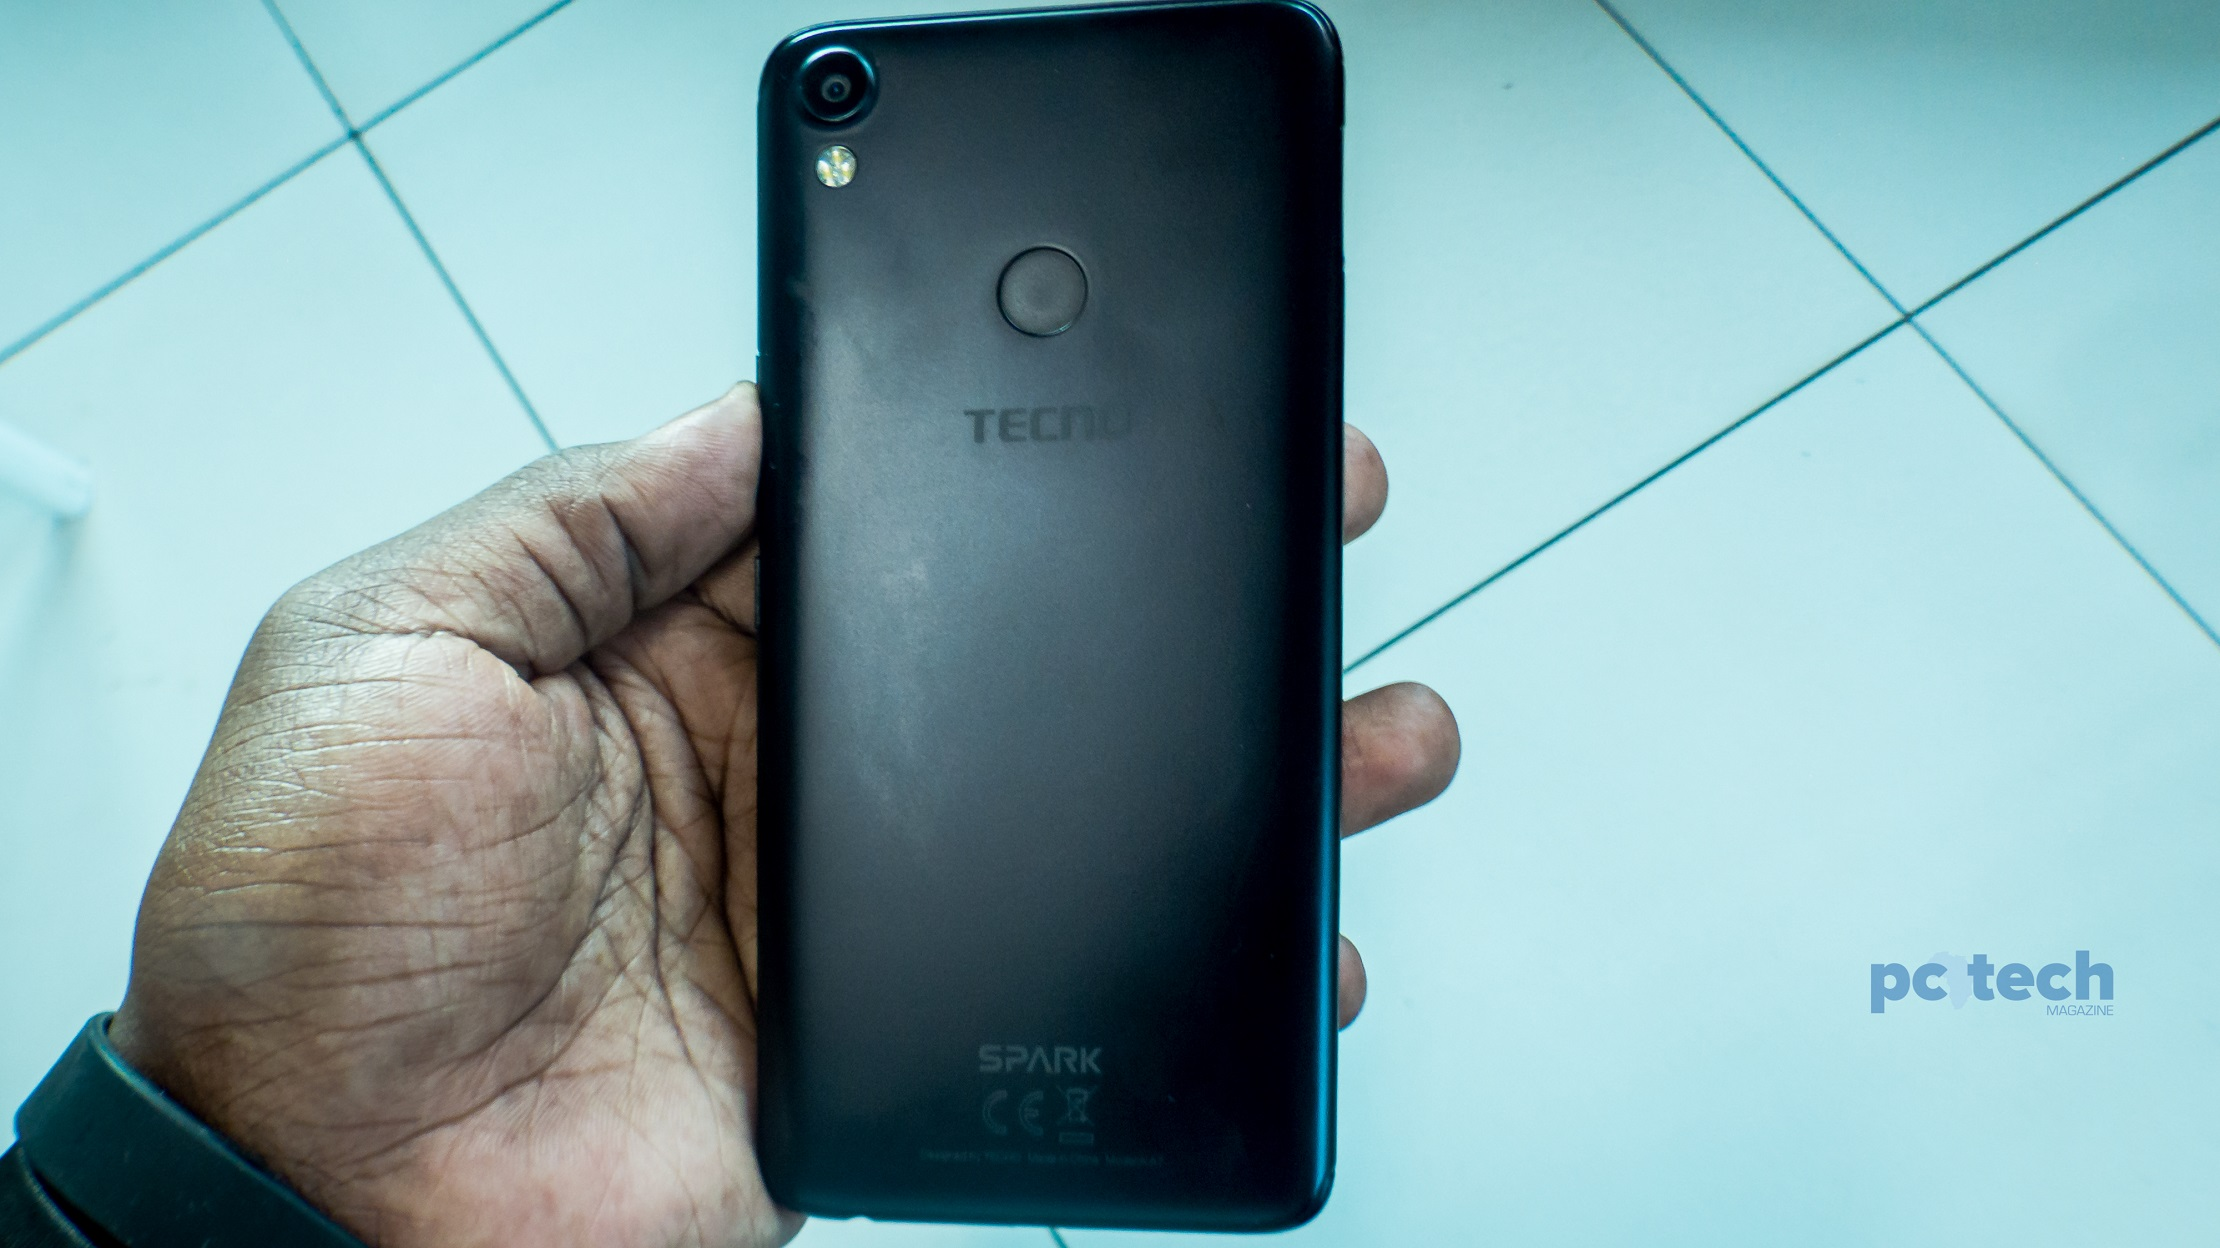 Tecno Spark 2 Review: Battery Life, & Camera Performance At